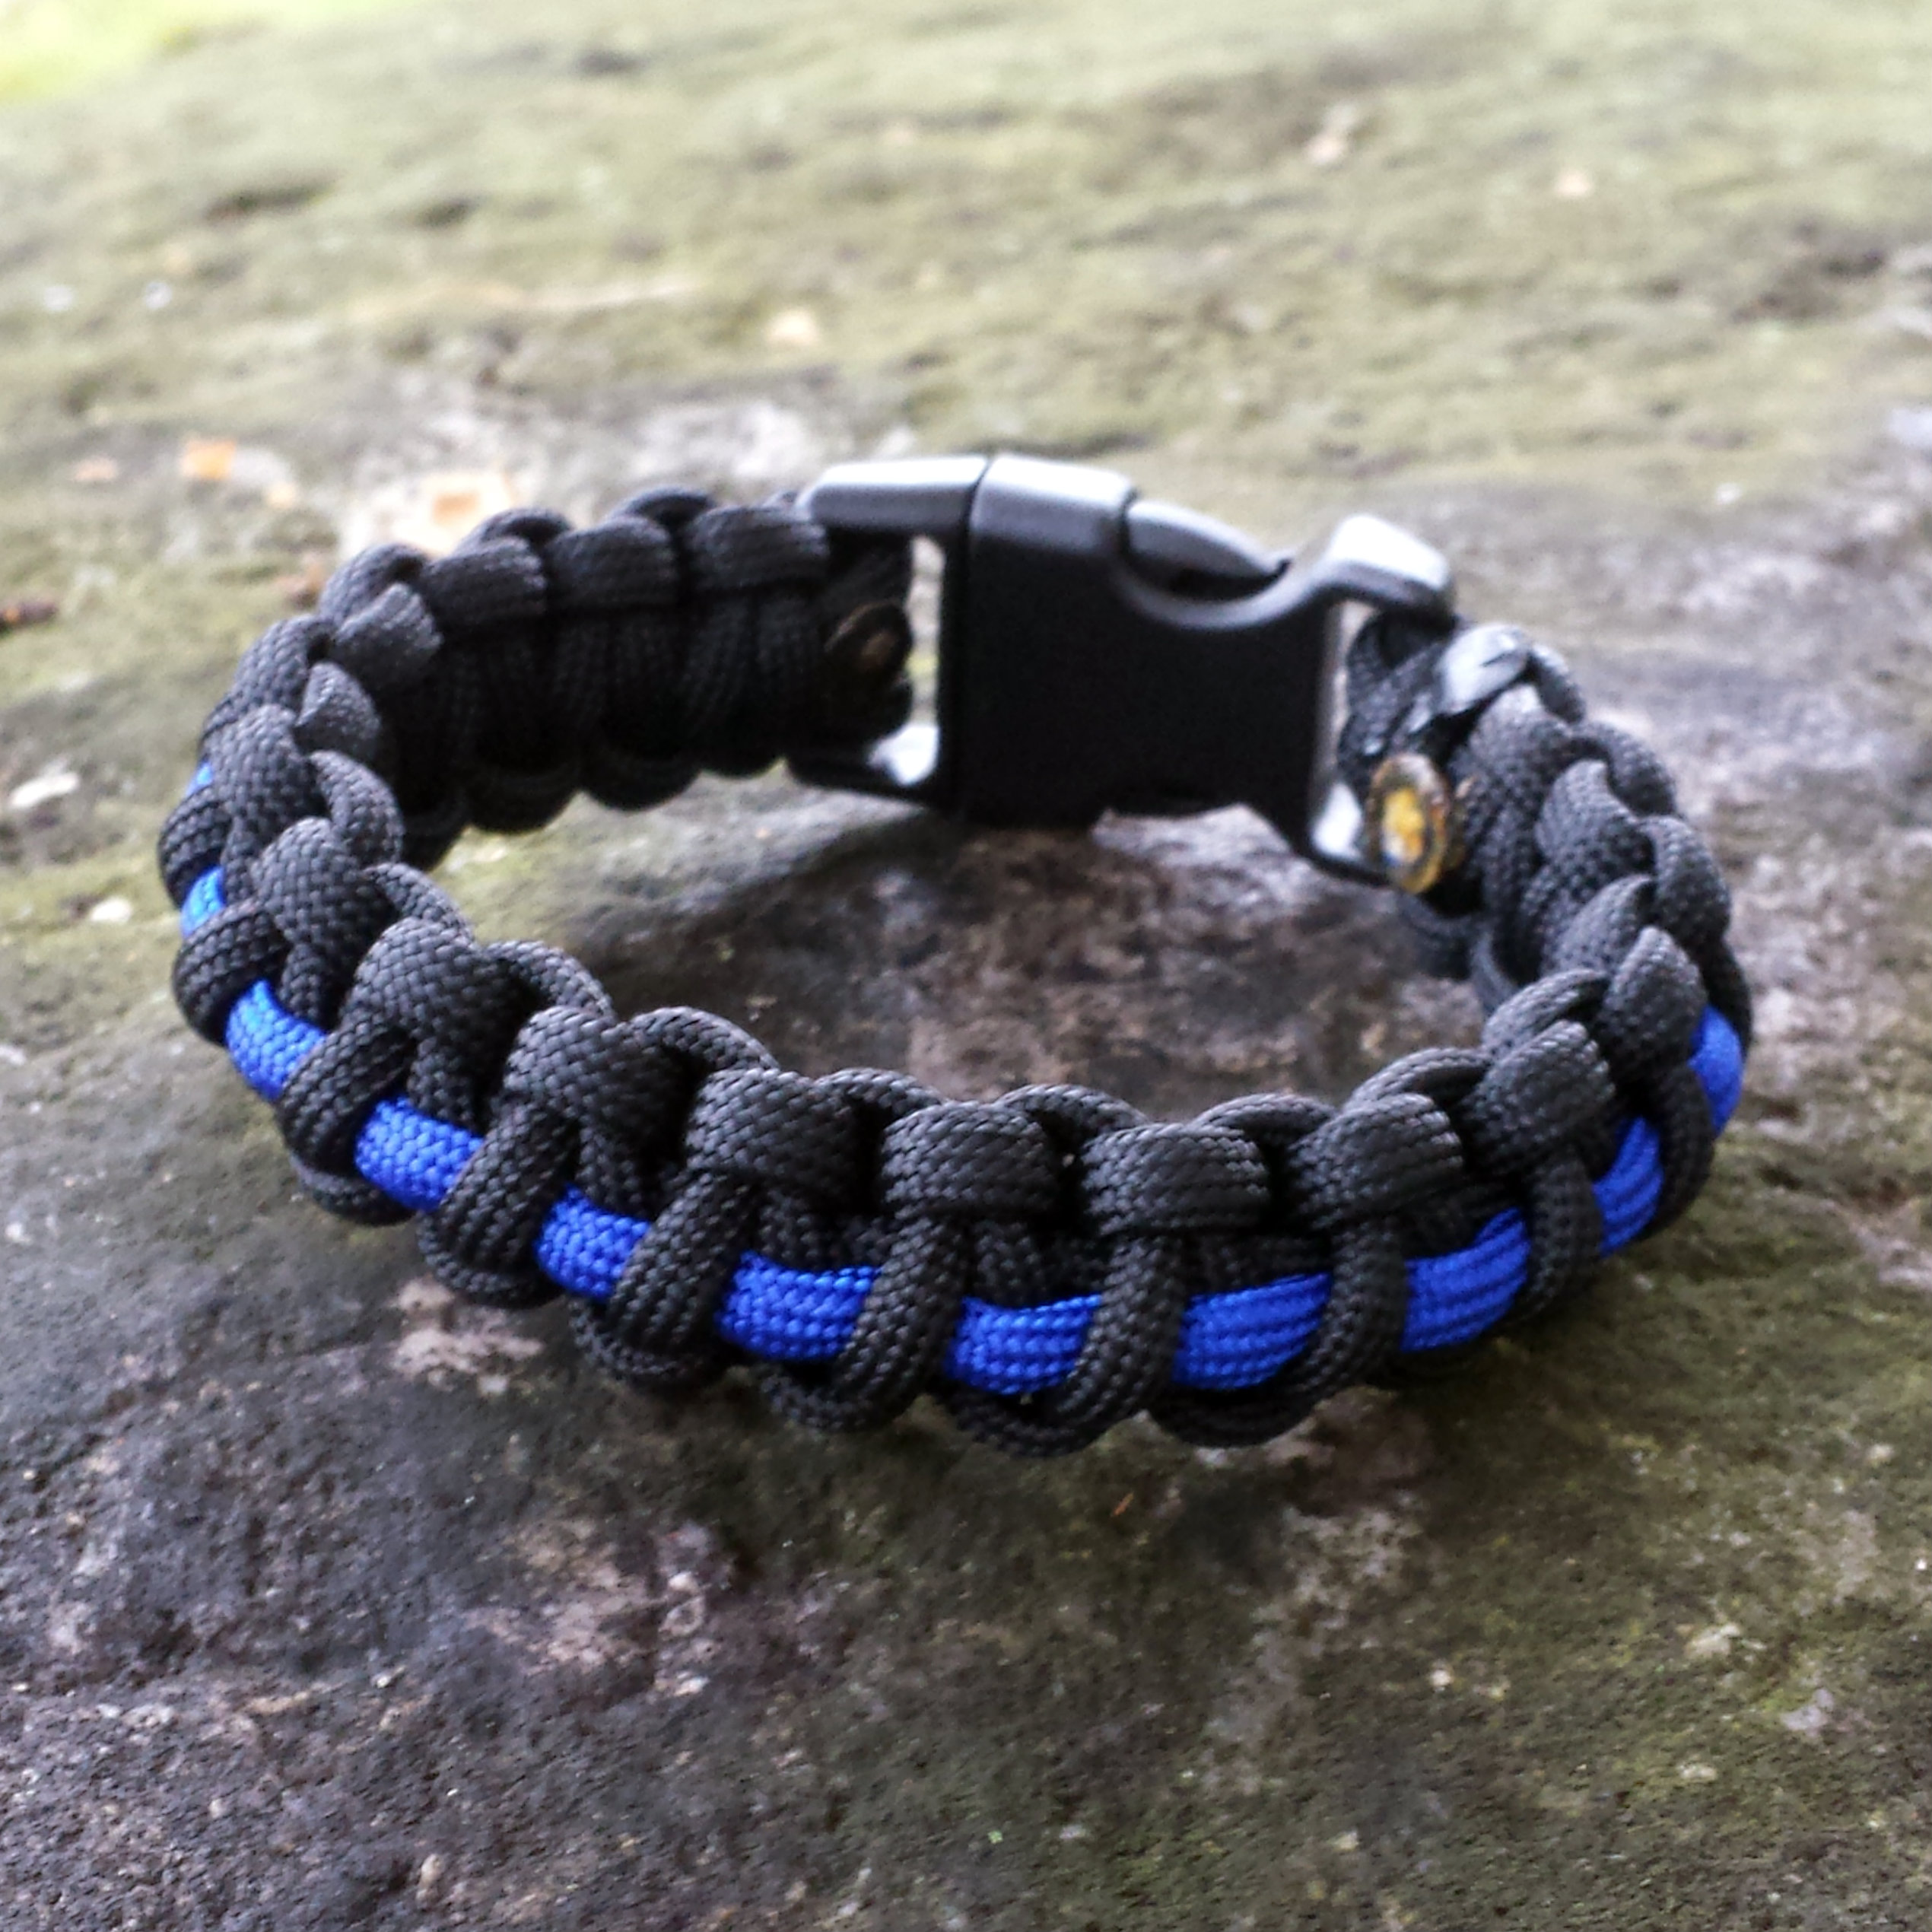 lives dp adjustable com w xl blue matter flag police survival amazon bracelet clasp paracord thin l jewelry metal line